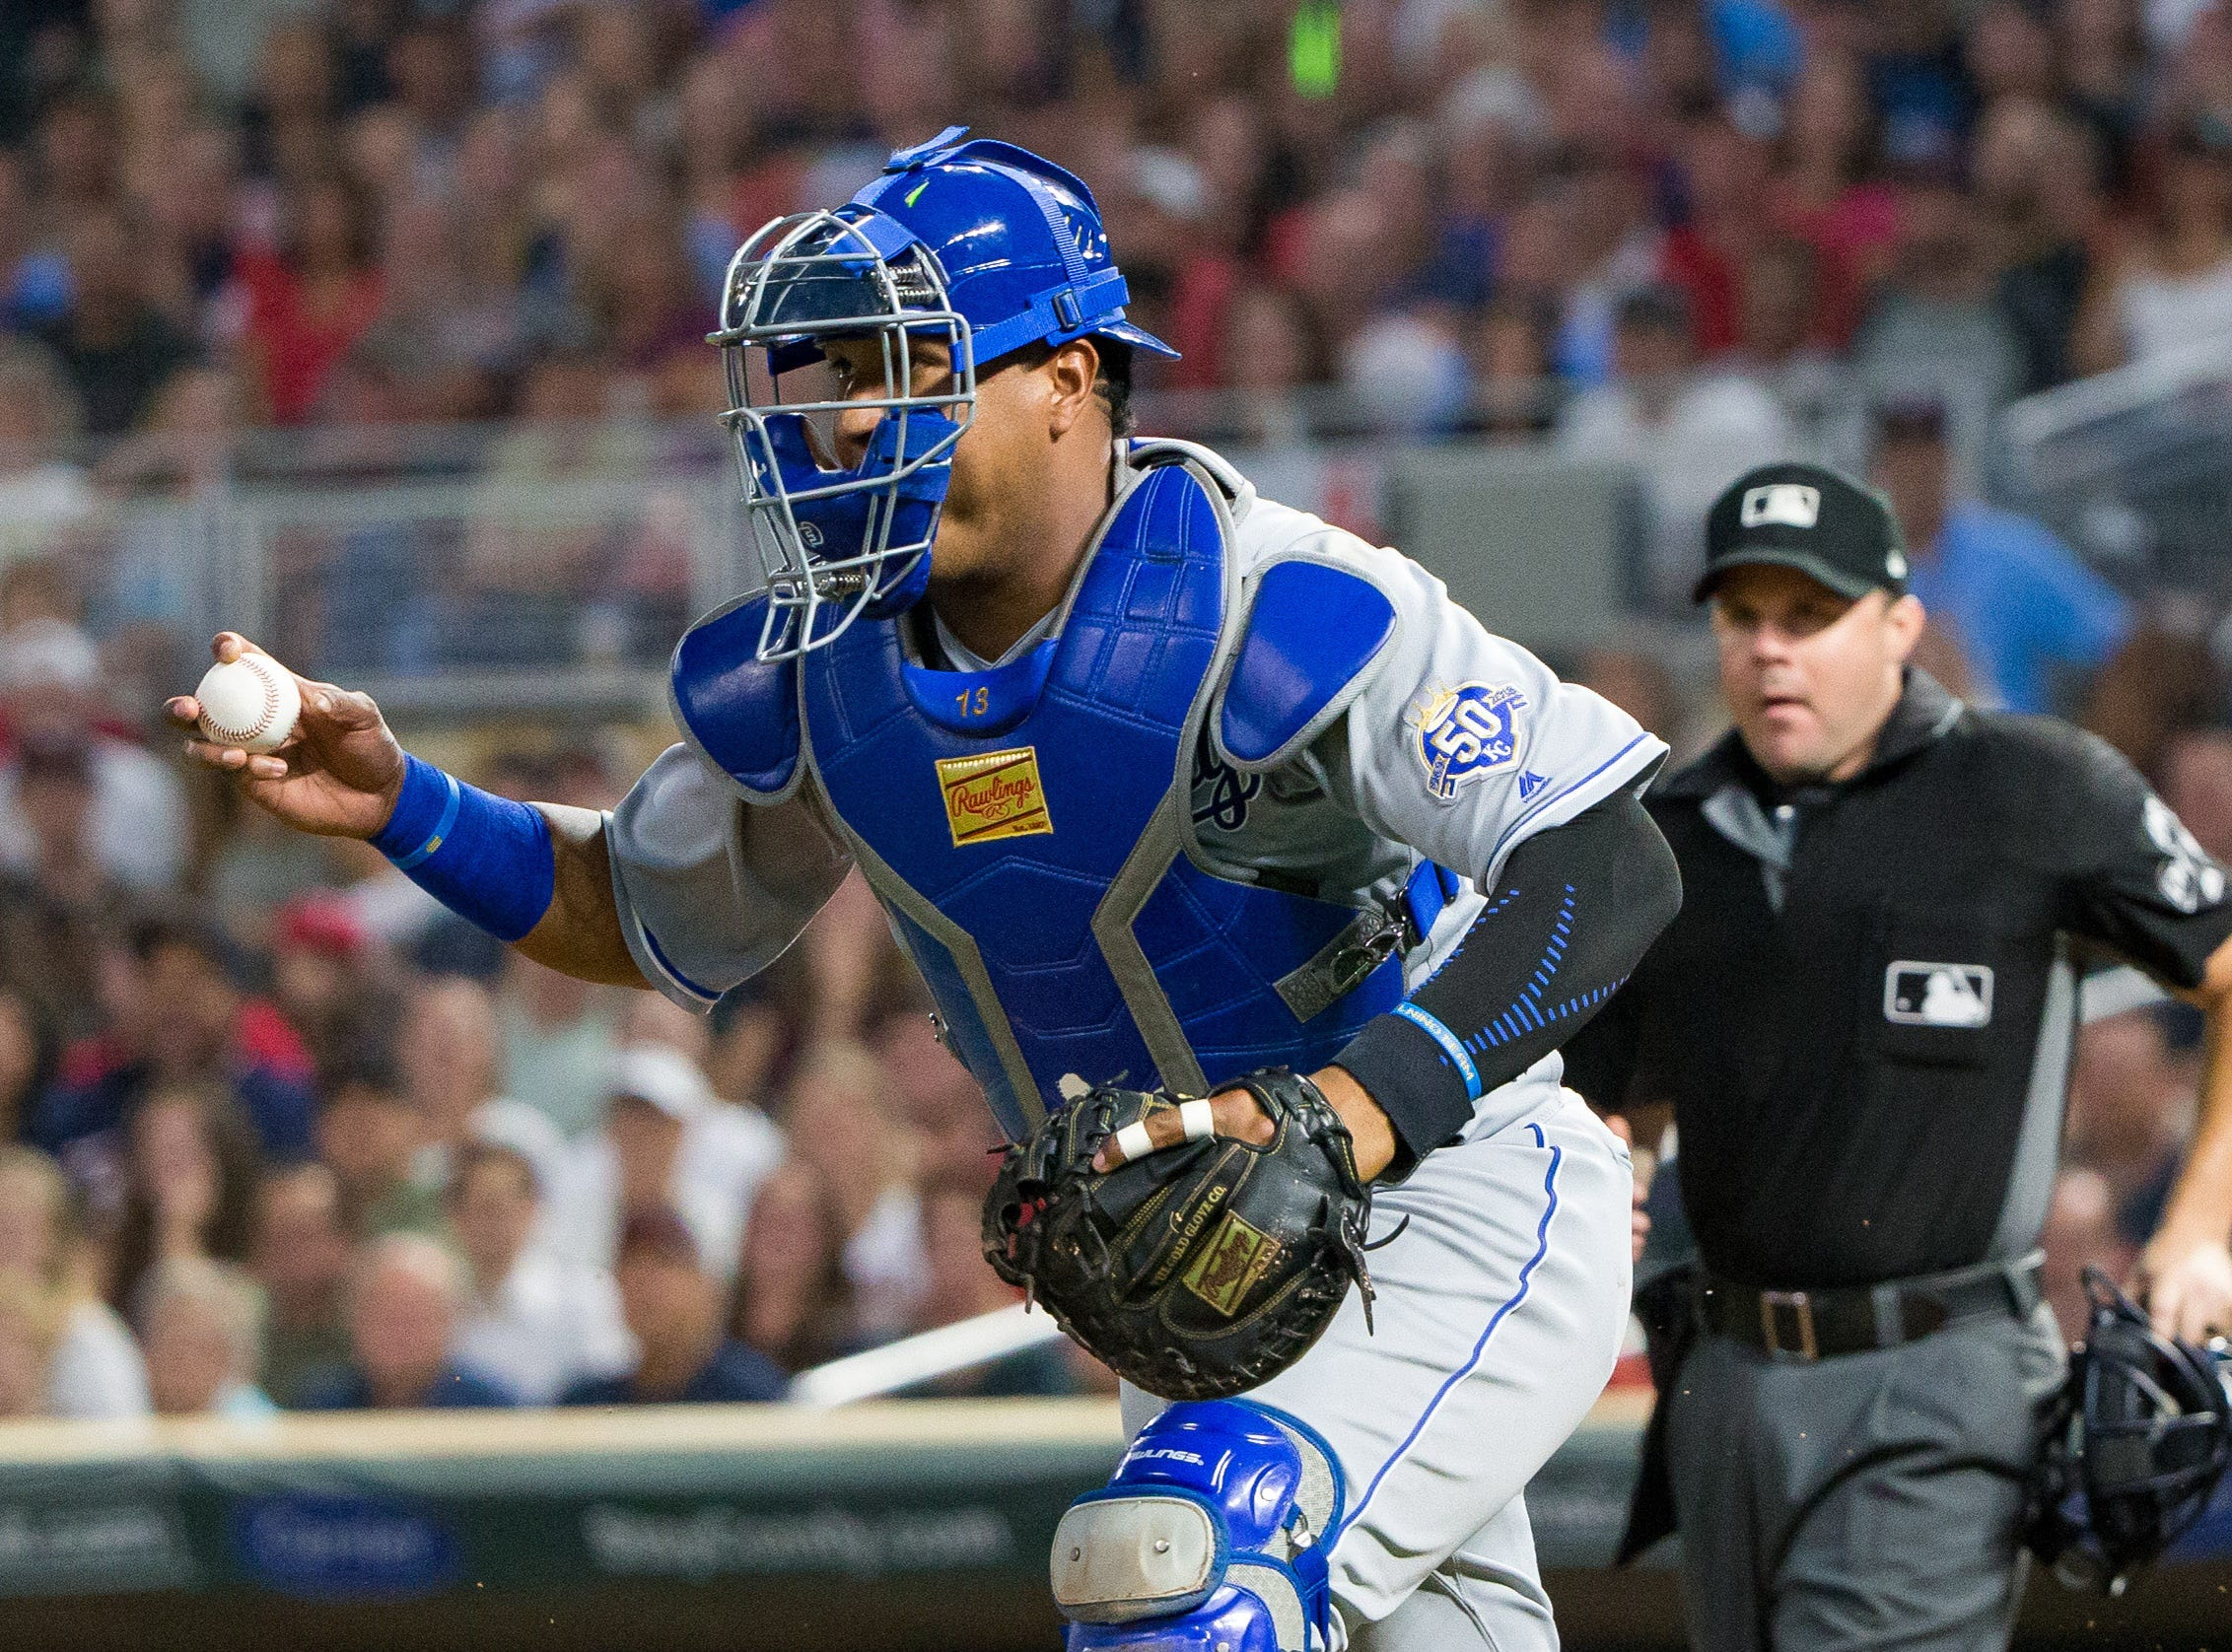 AL Catcher – Salvador Perez, Royals (fifth)